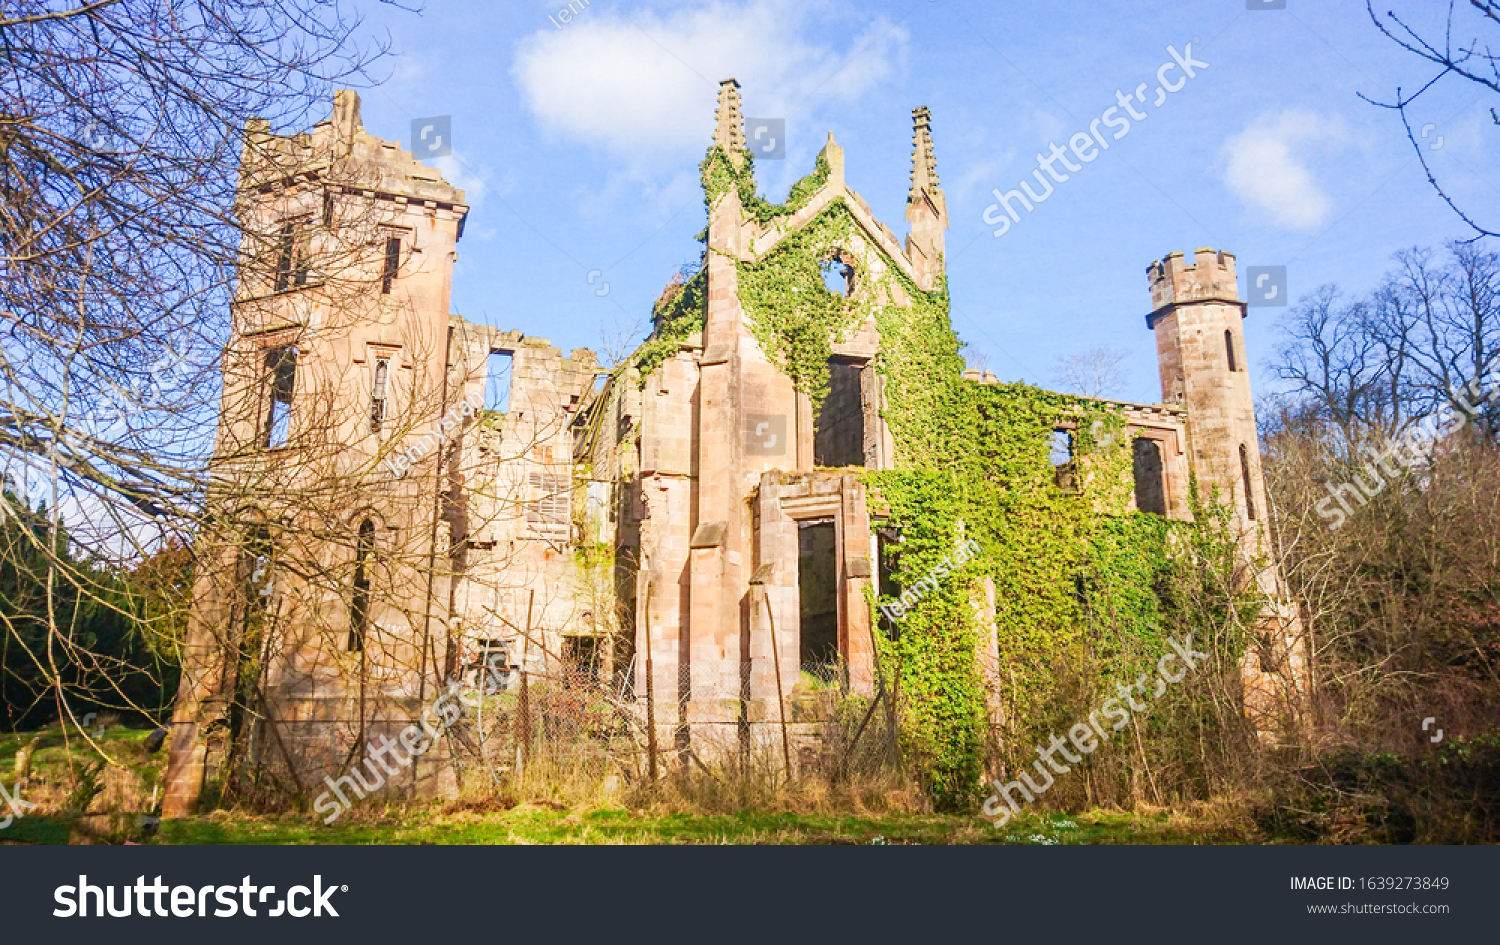 Ruin of Cambusnethan Priory also known as Cambusnethan House located in Wishaw, North Lanarkshire, Scotland, built in 17th century